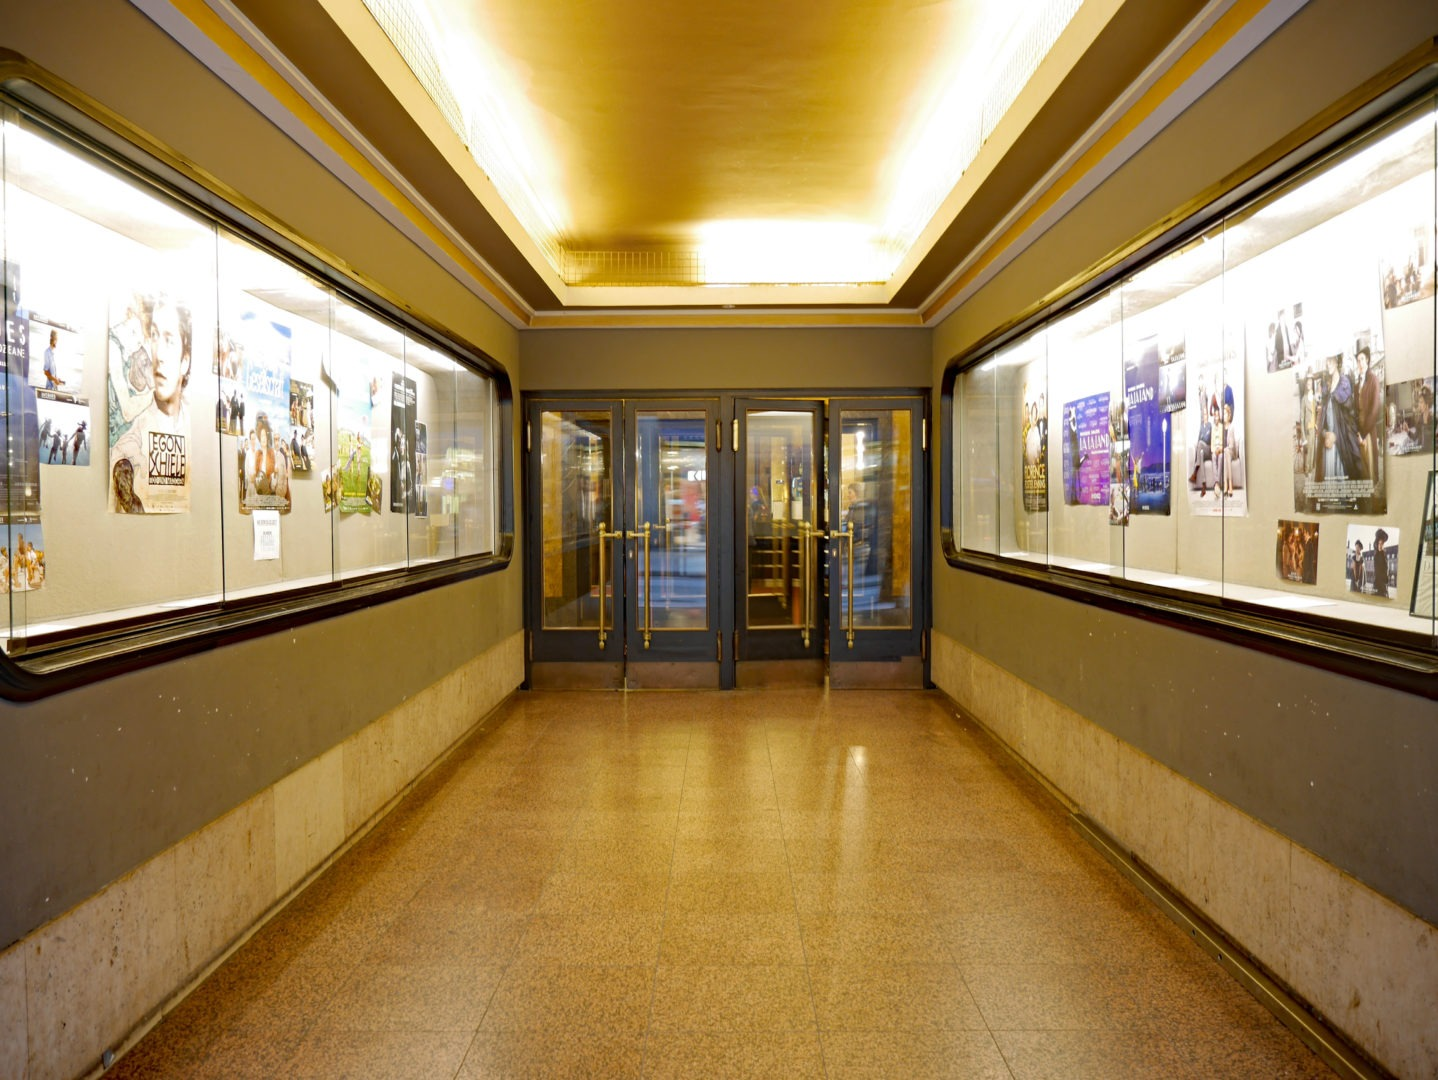 Passage-kino-hamburg